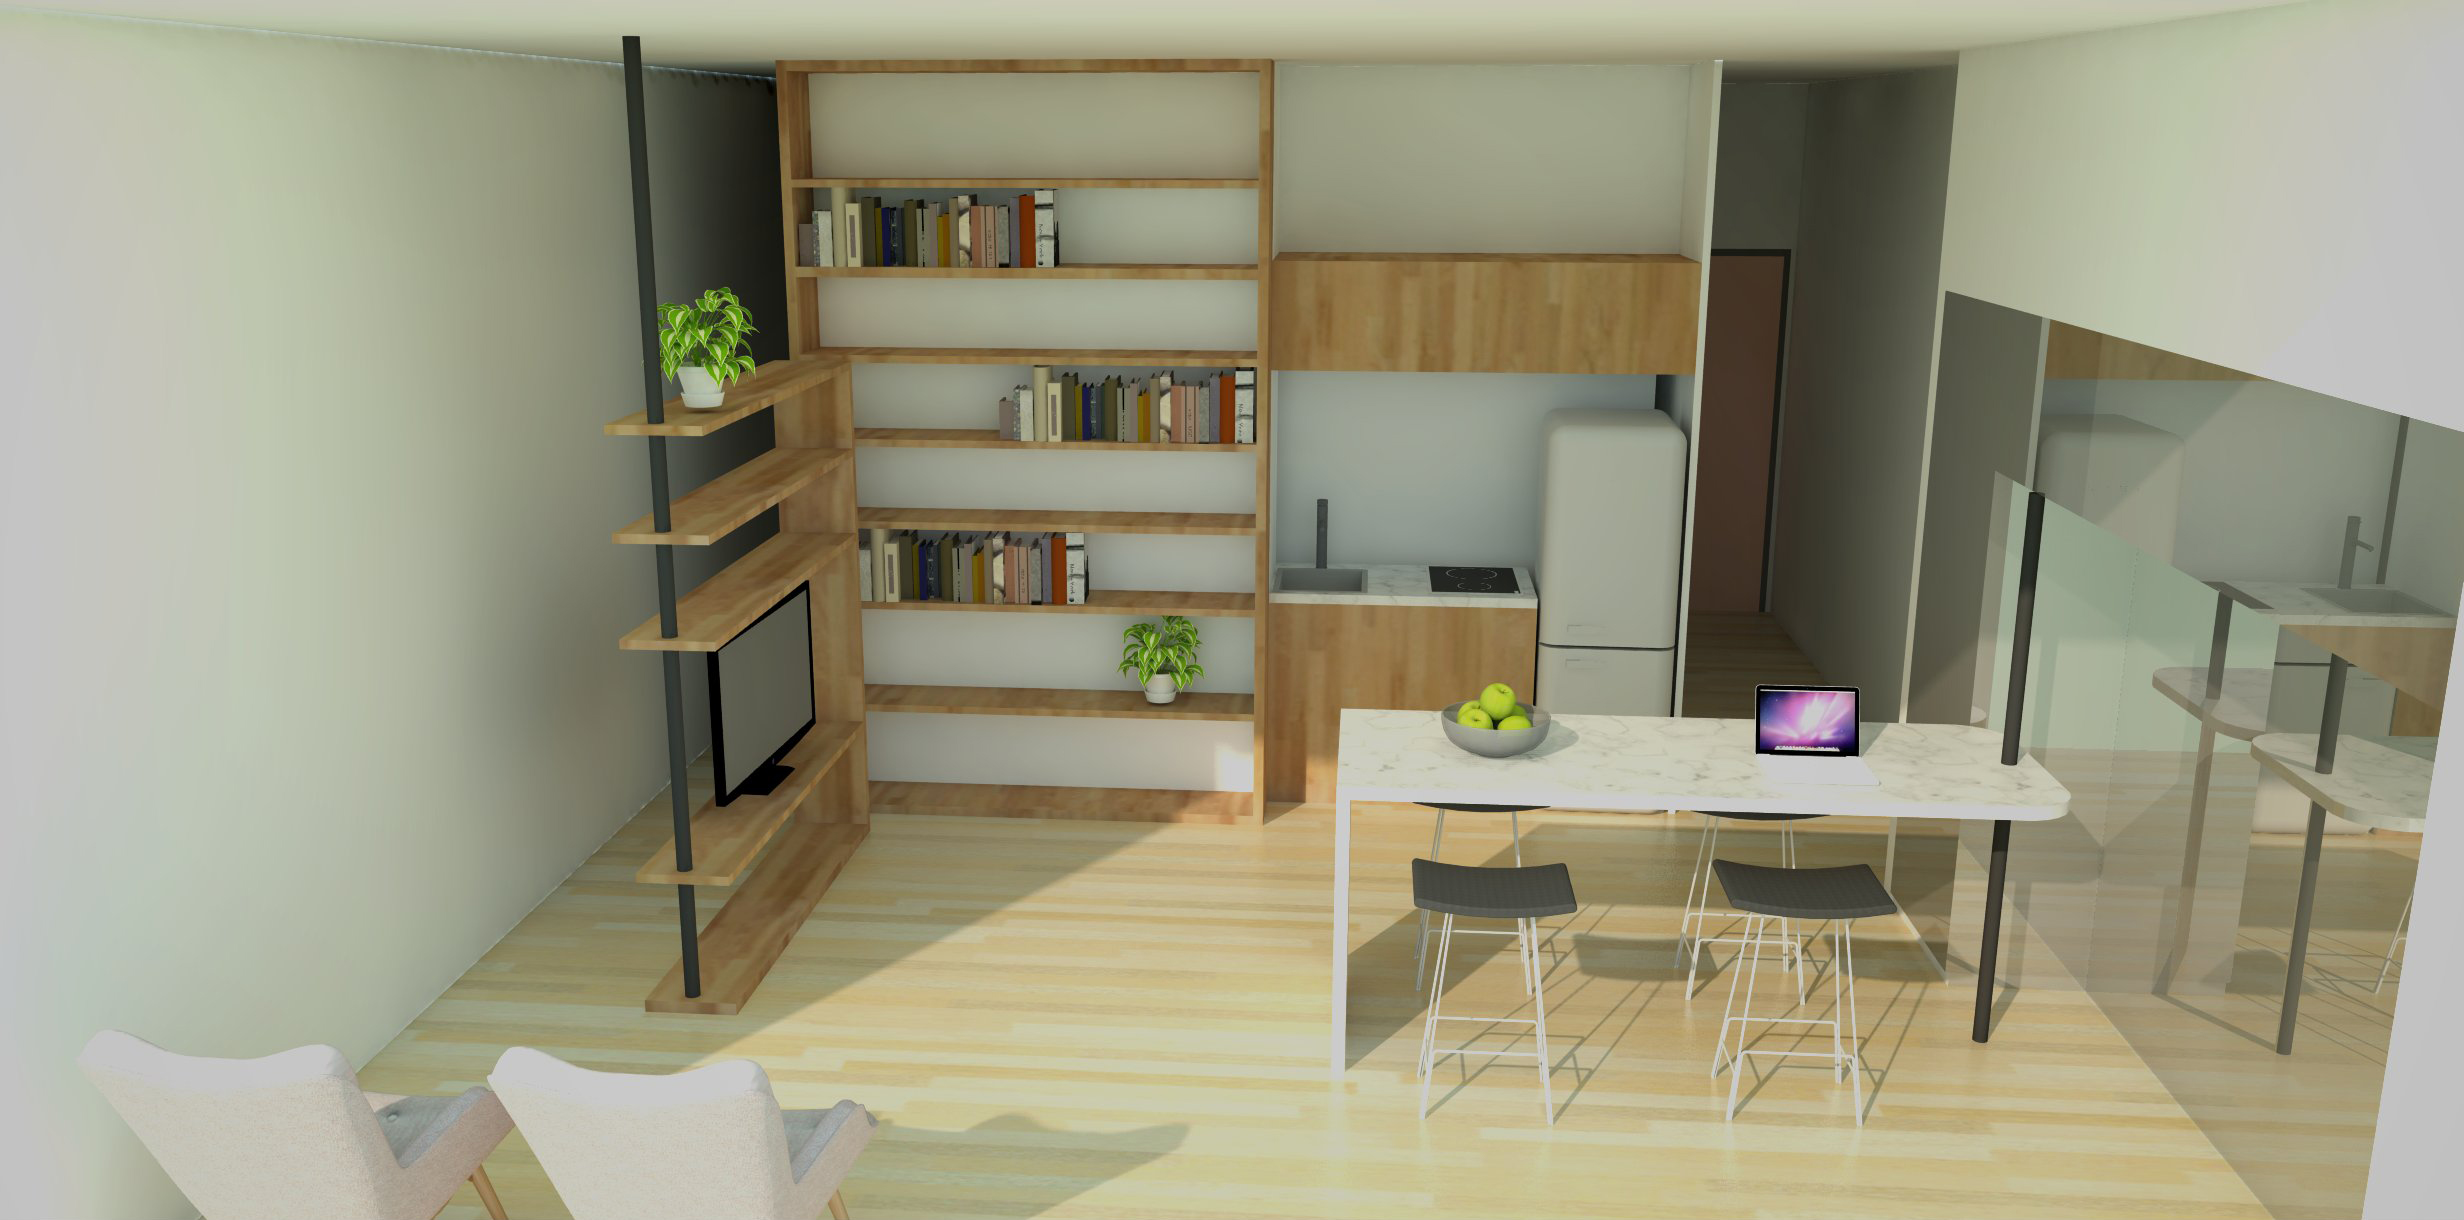 ilsa-melchiori-interior-design-render-artwork-micro-apartment-3-1.jpg